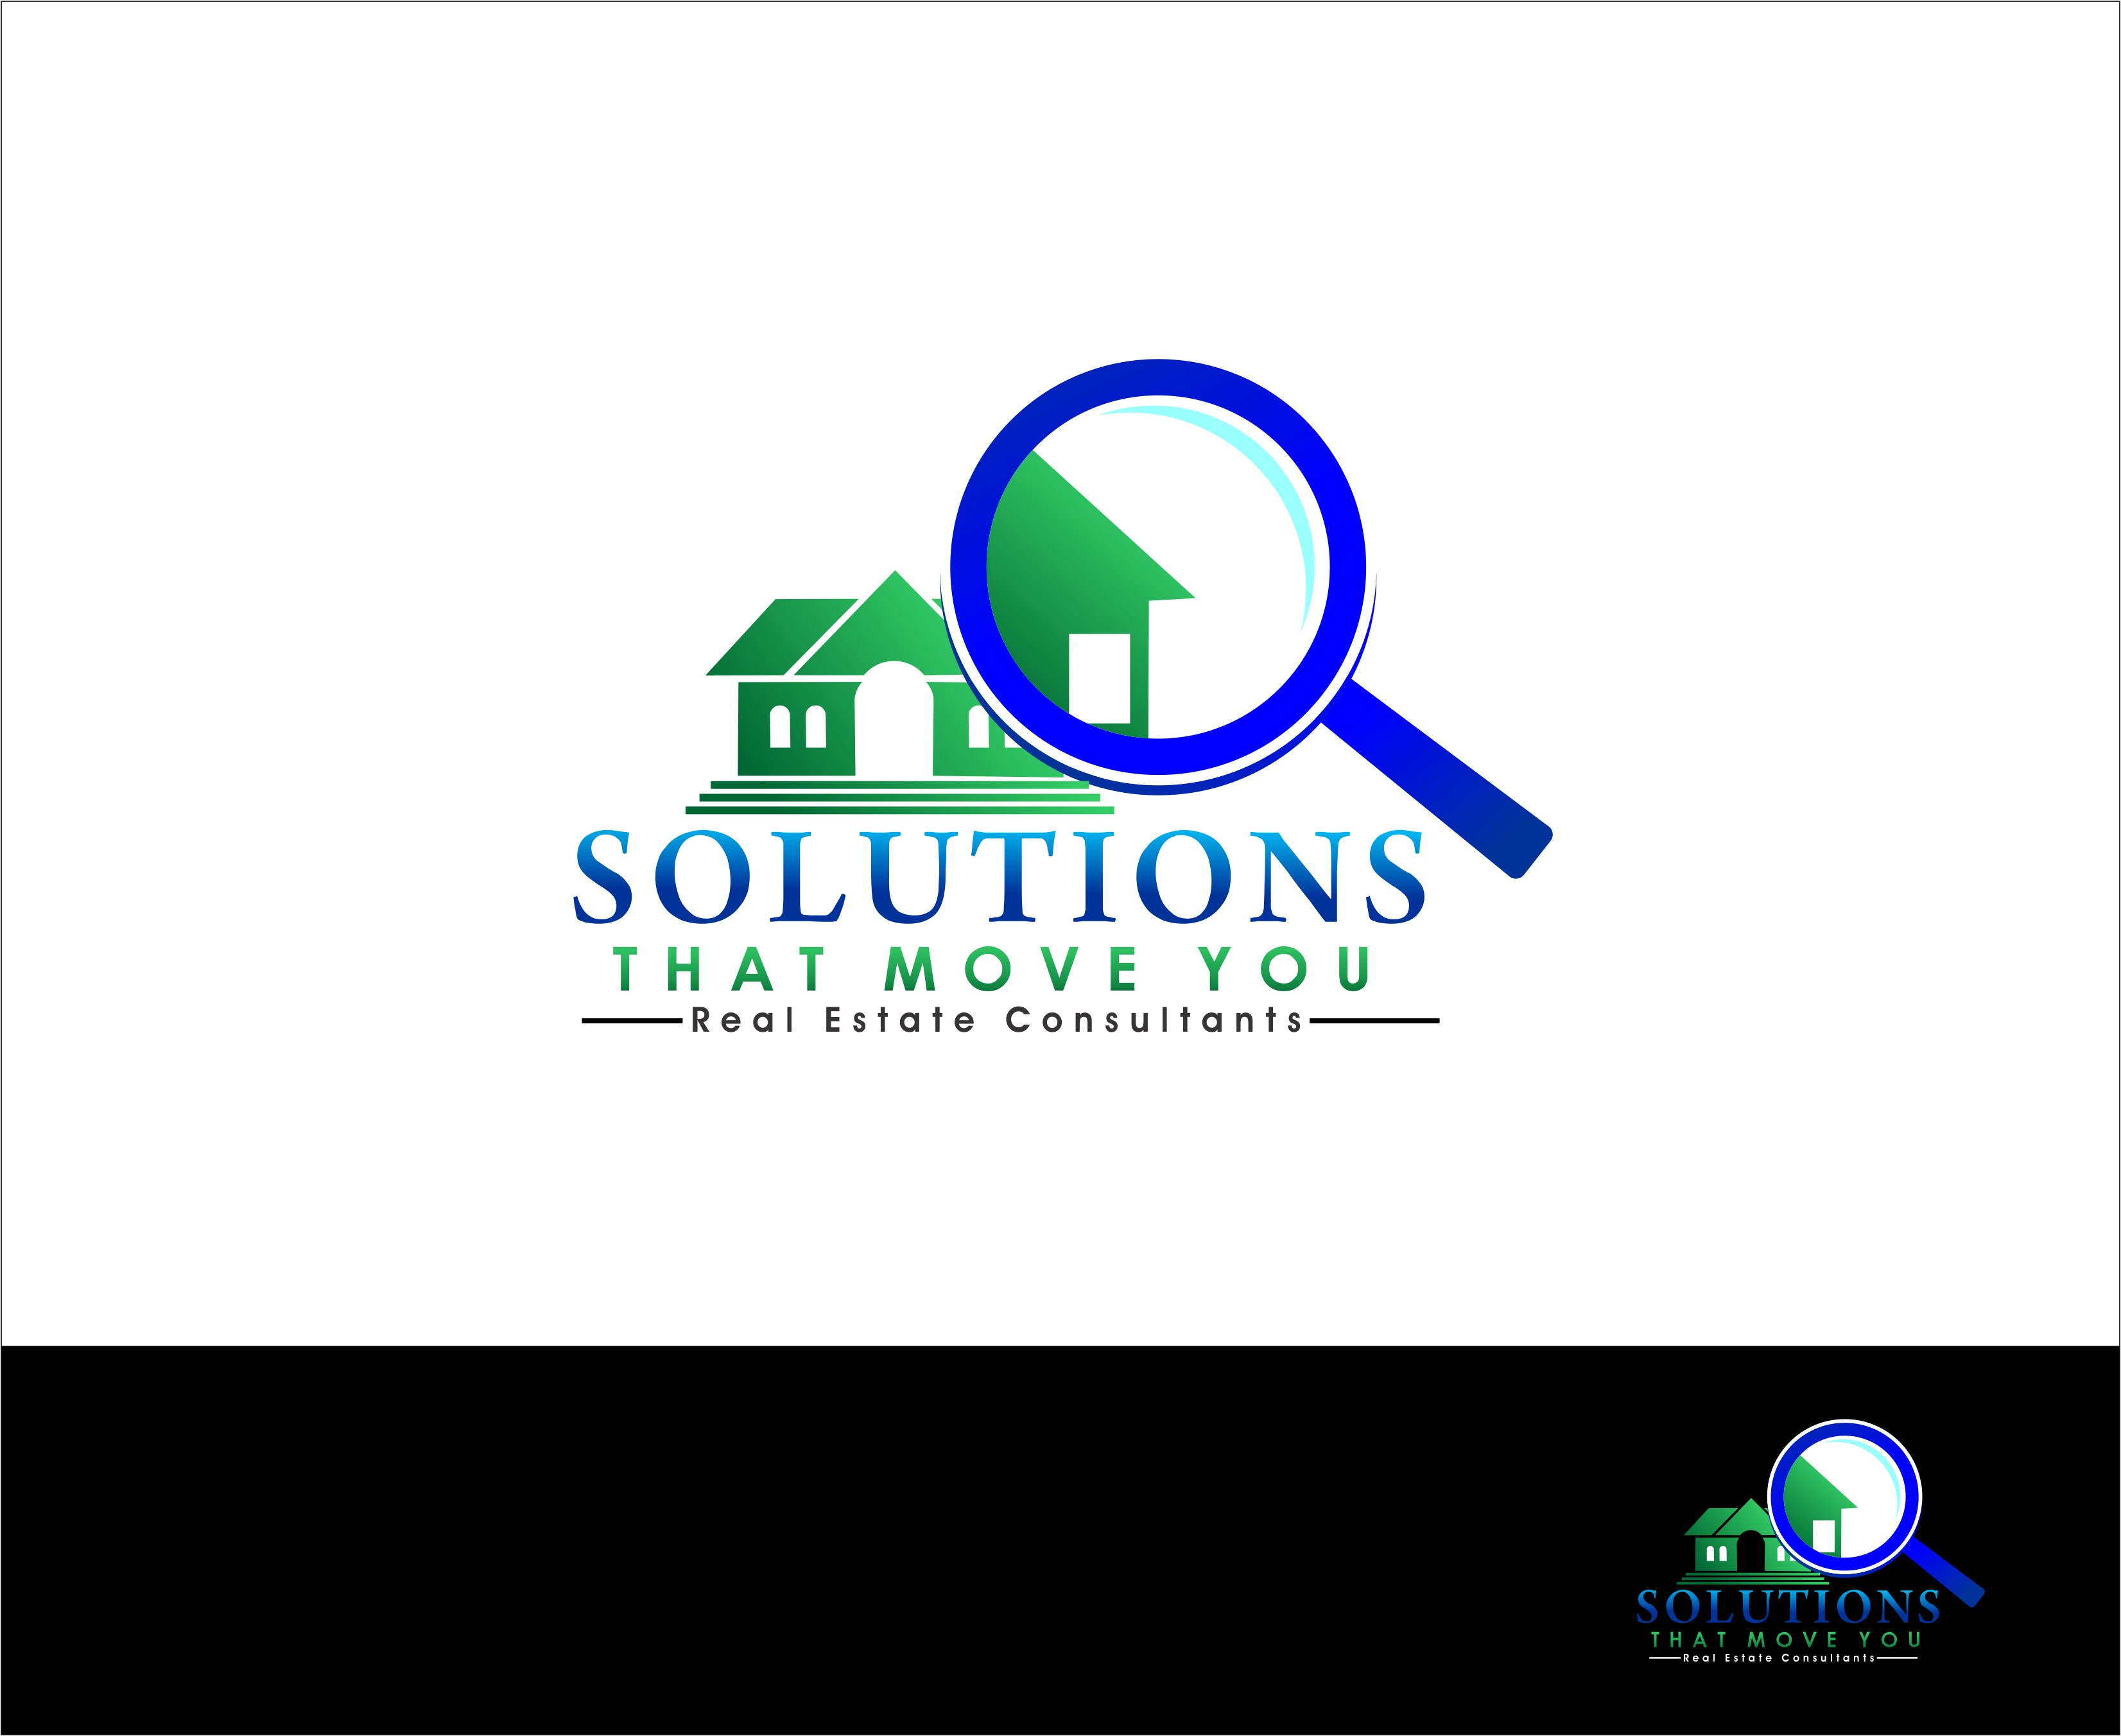 Logo Design by Mhon_Rose - Entry No. 35 in the Logo Design Contest Imaginative Logo Design for Solutions That Move You.